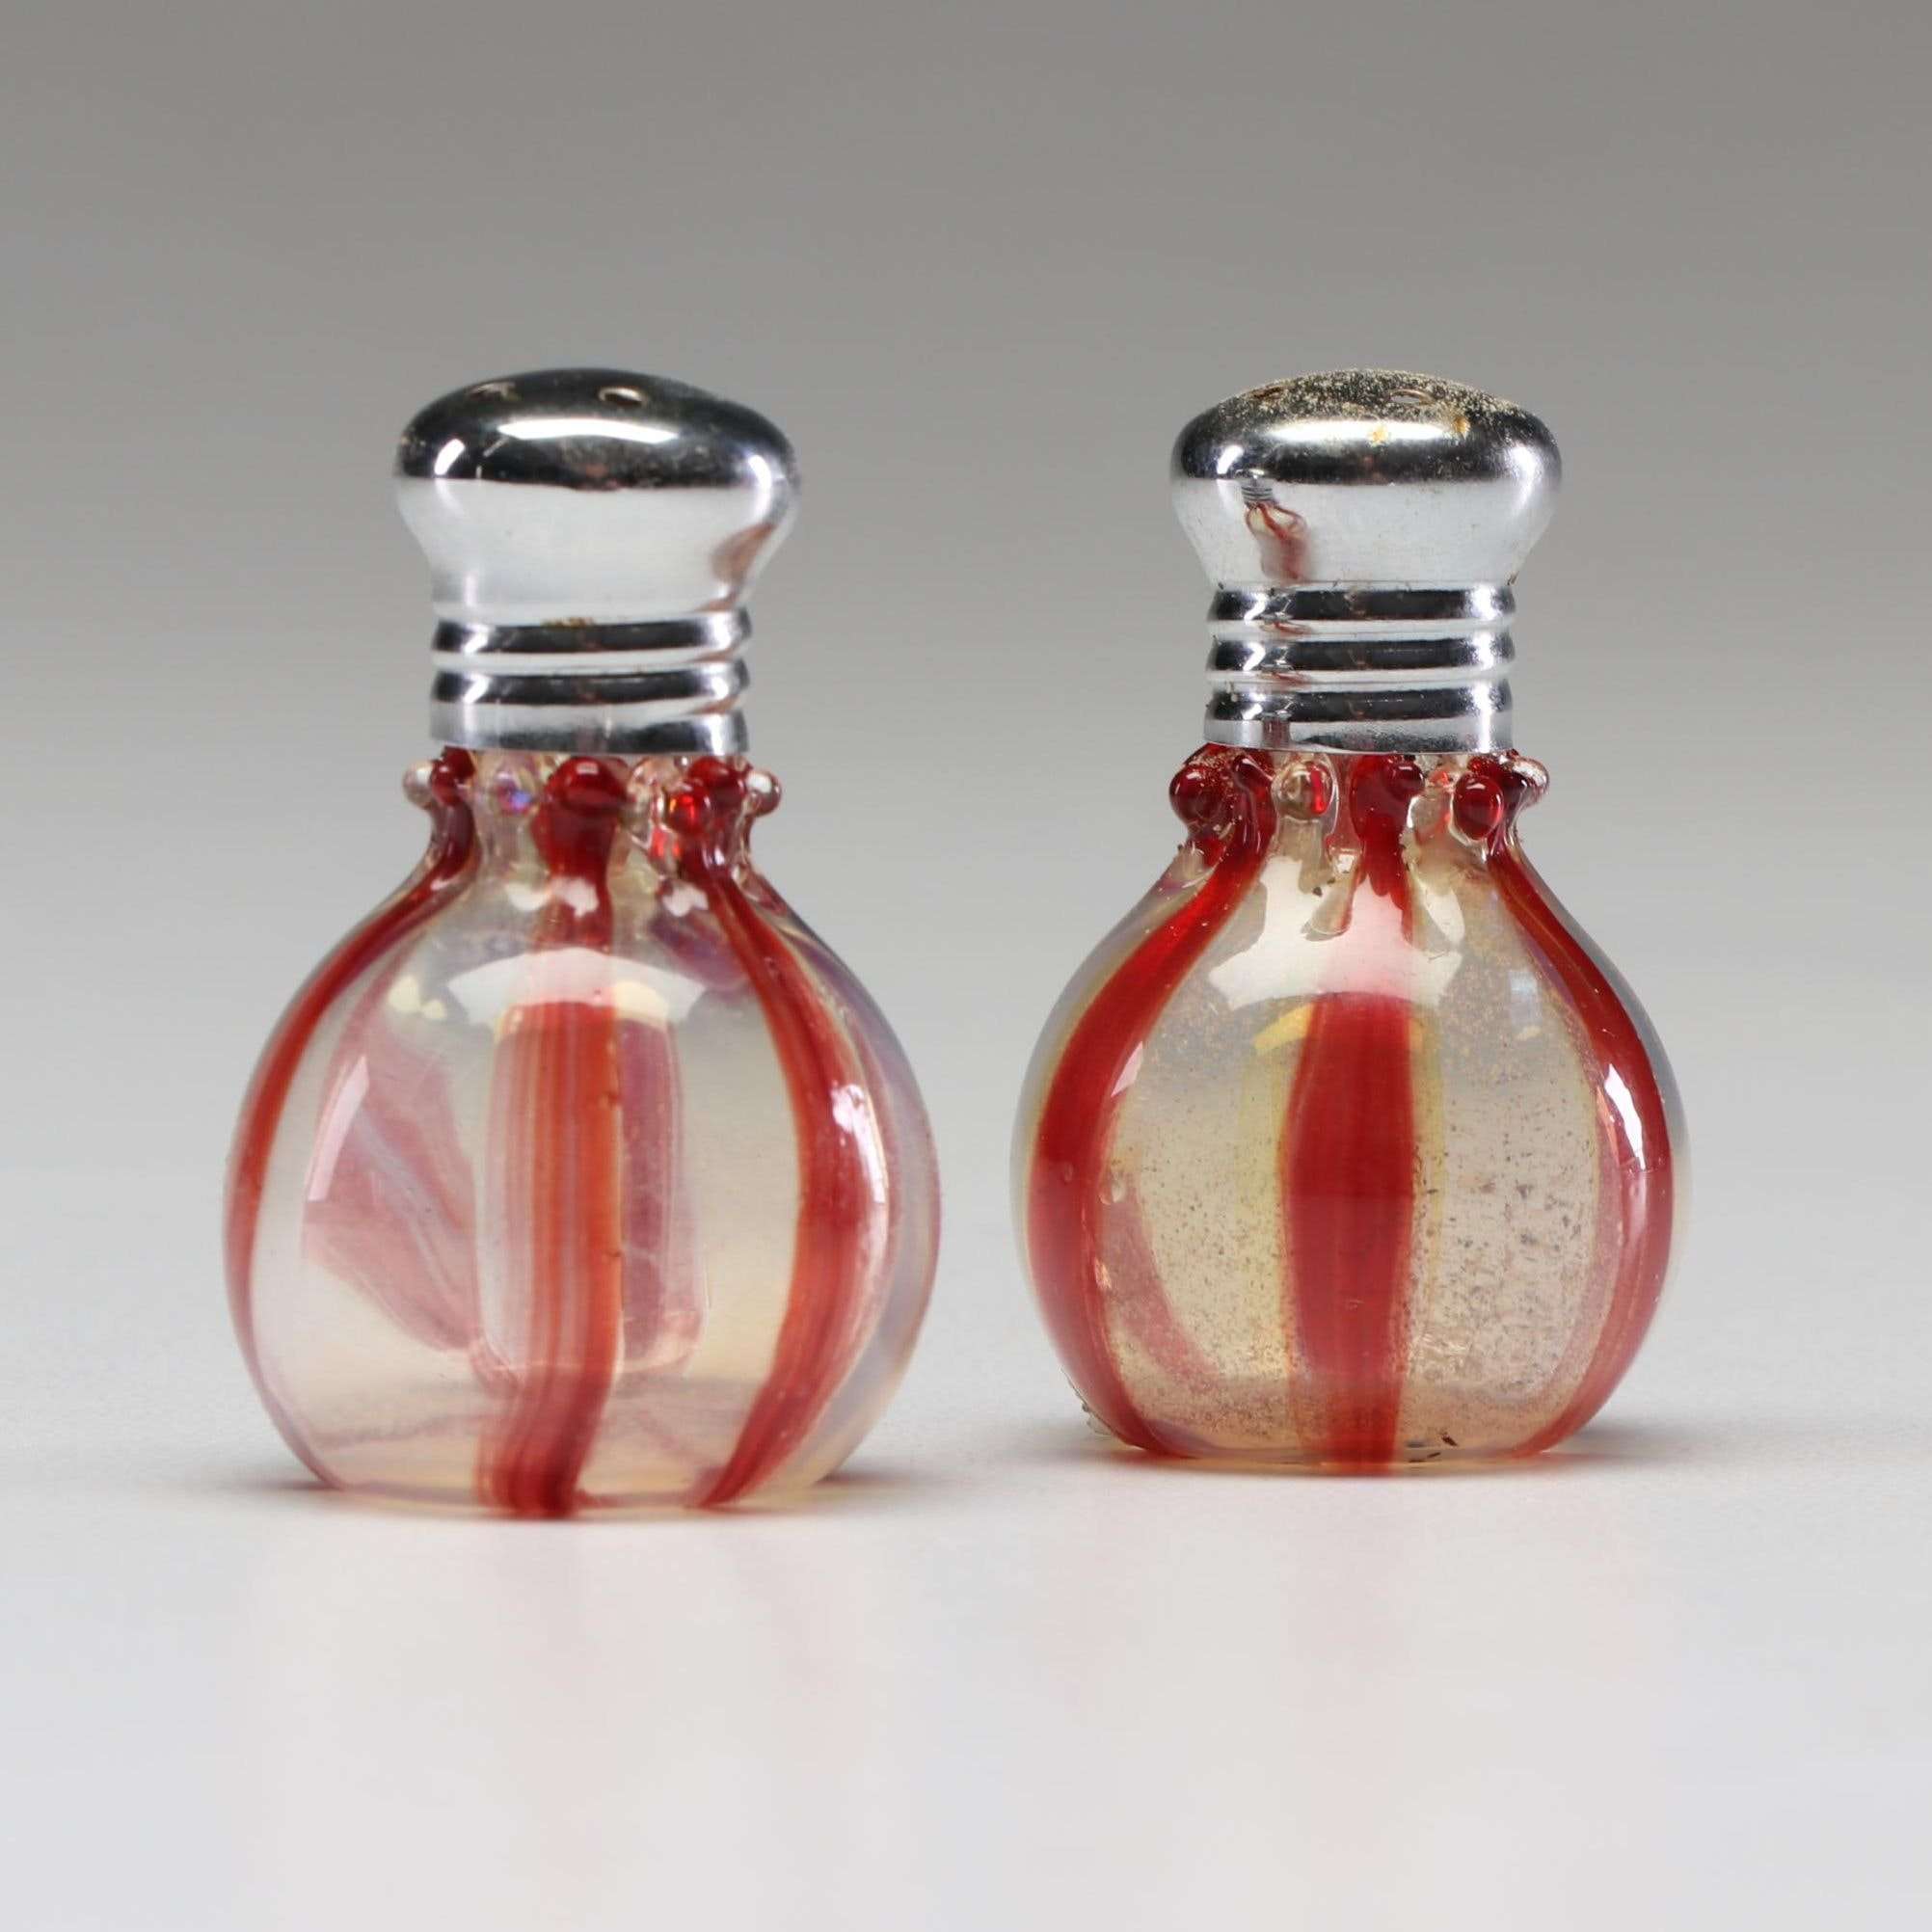 Venetian Glass Salt and Pepper Shakers